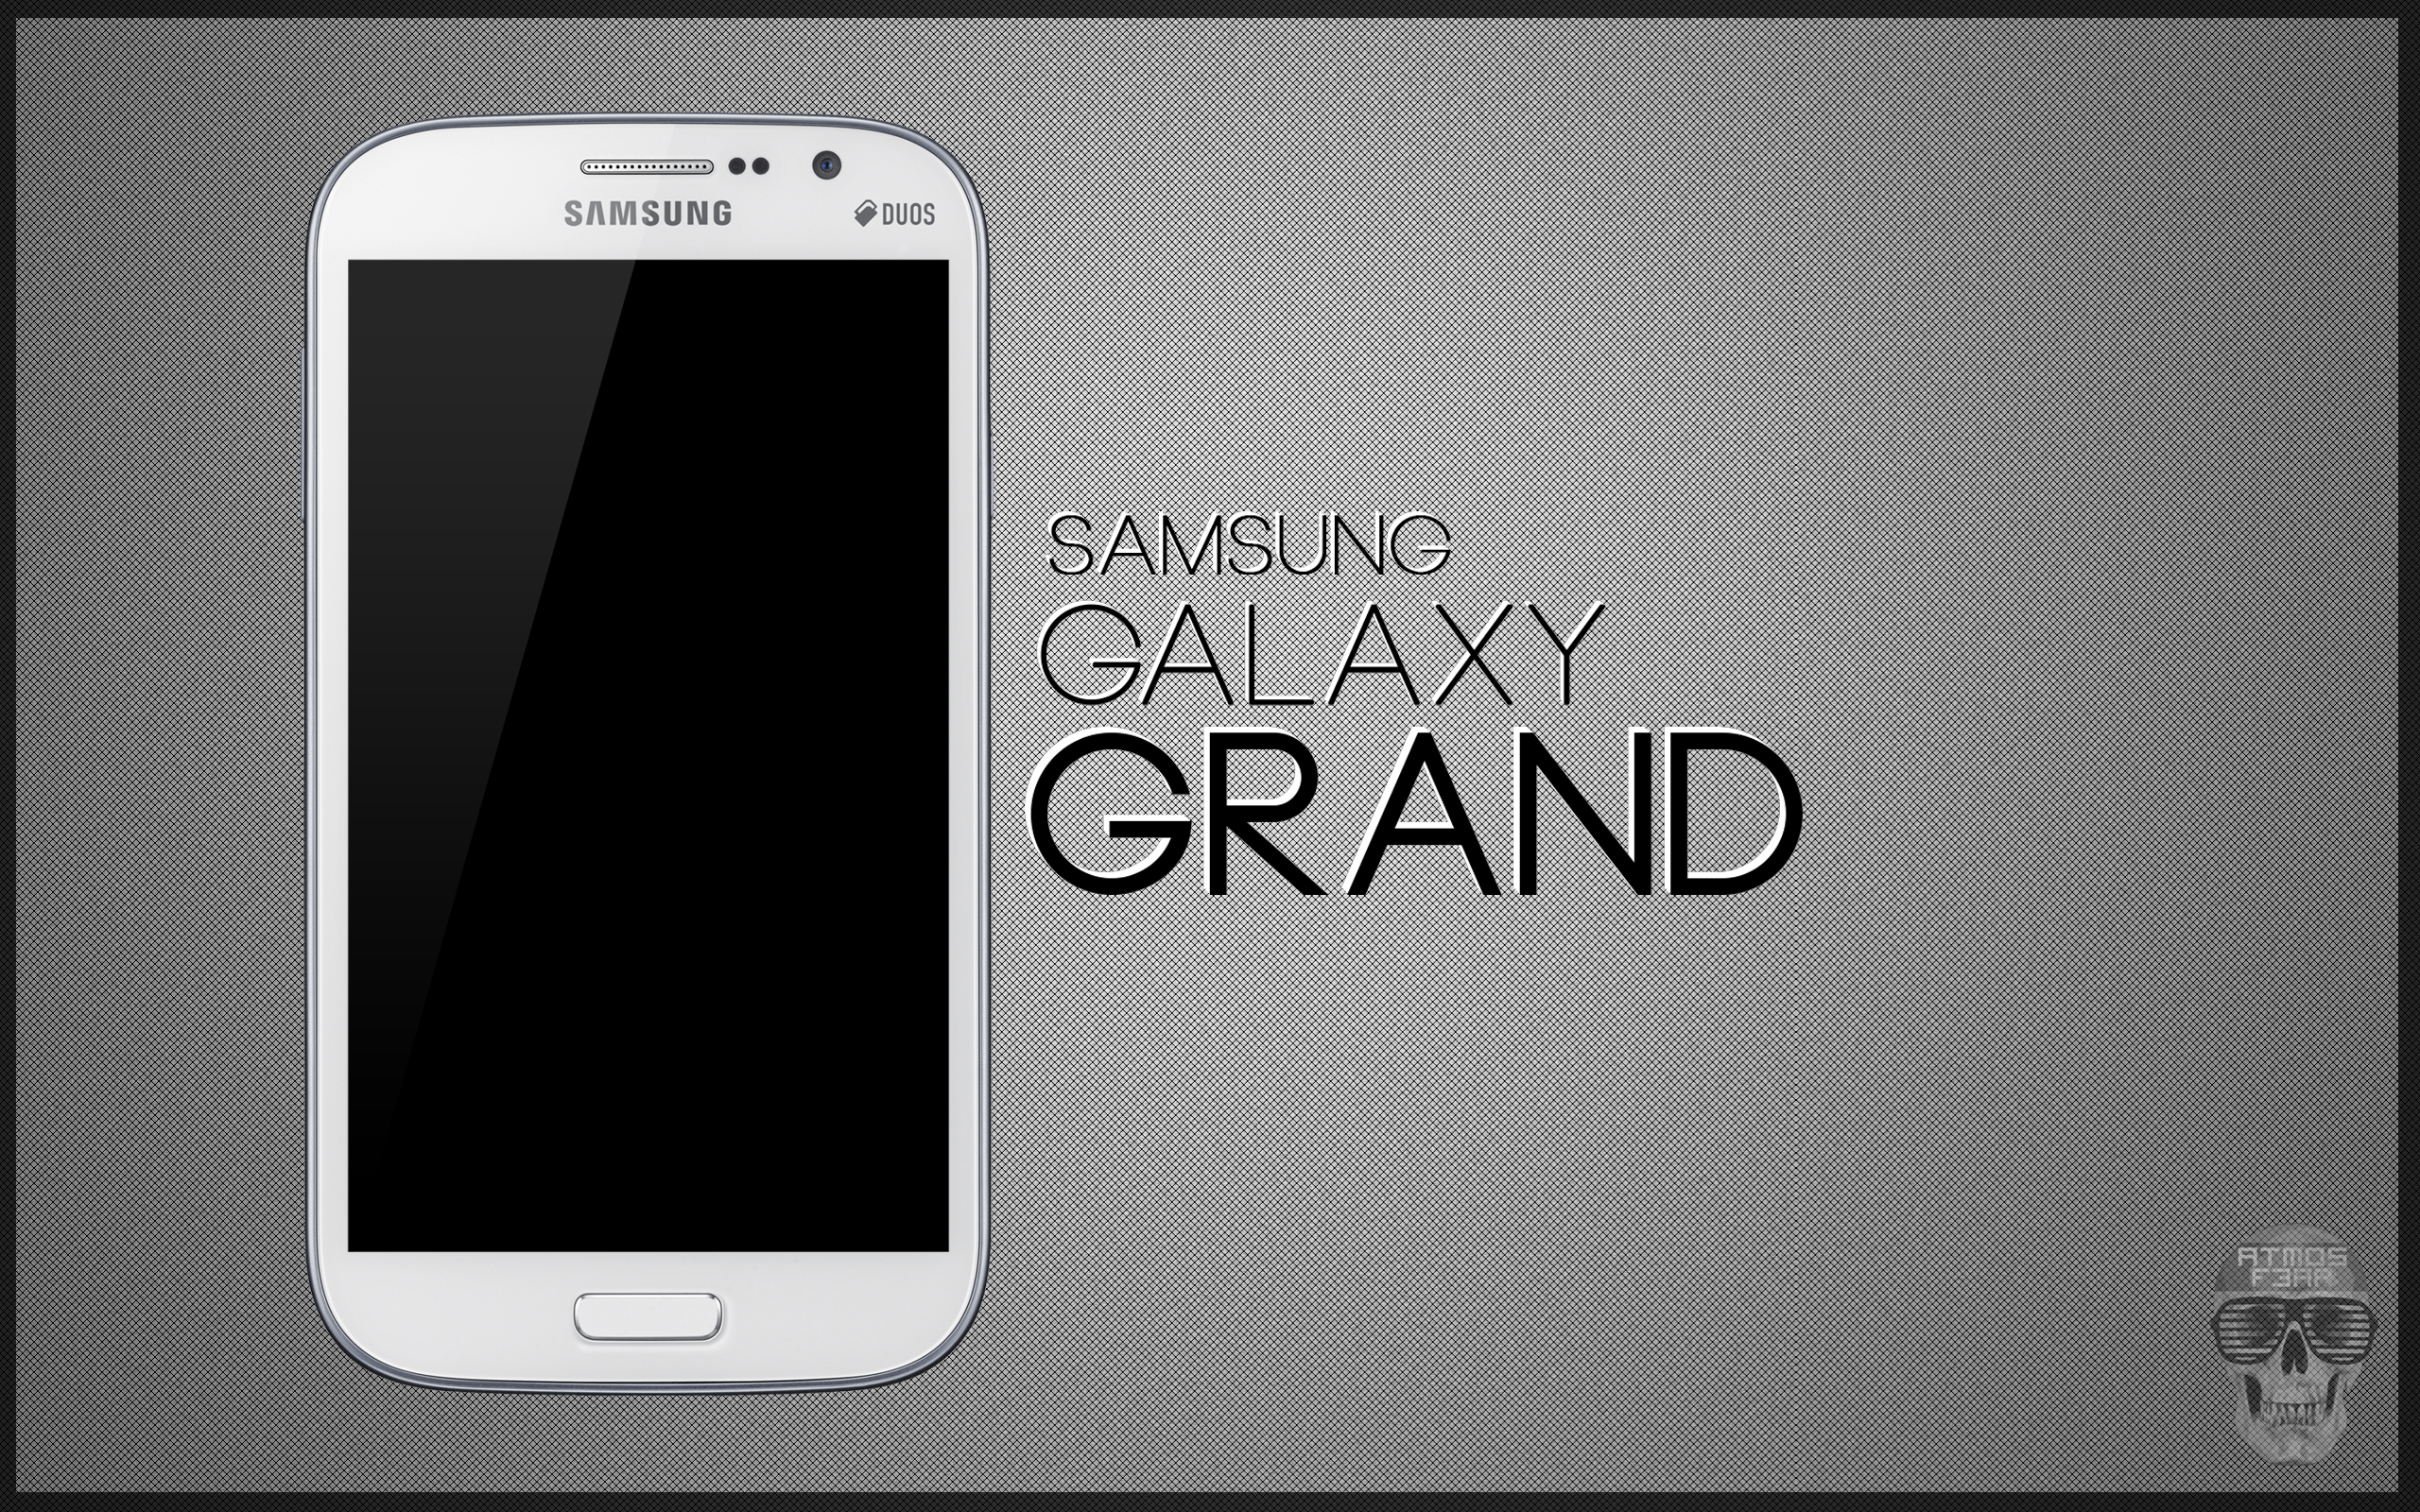 Samsung Galaxy Grand Psd By Danishprakash On Deviantart